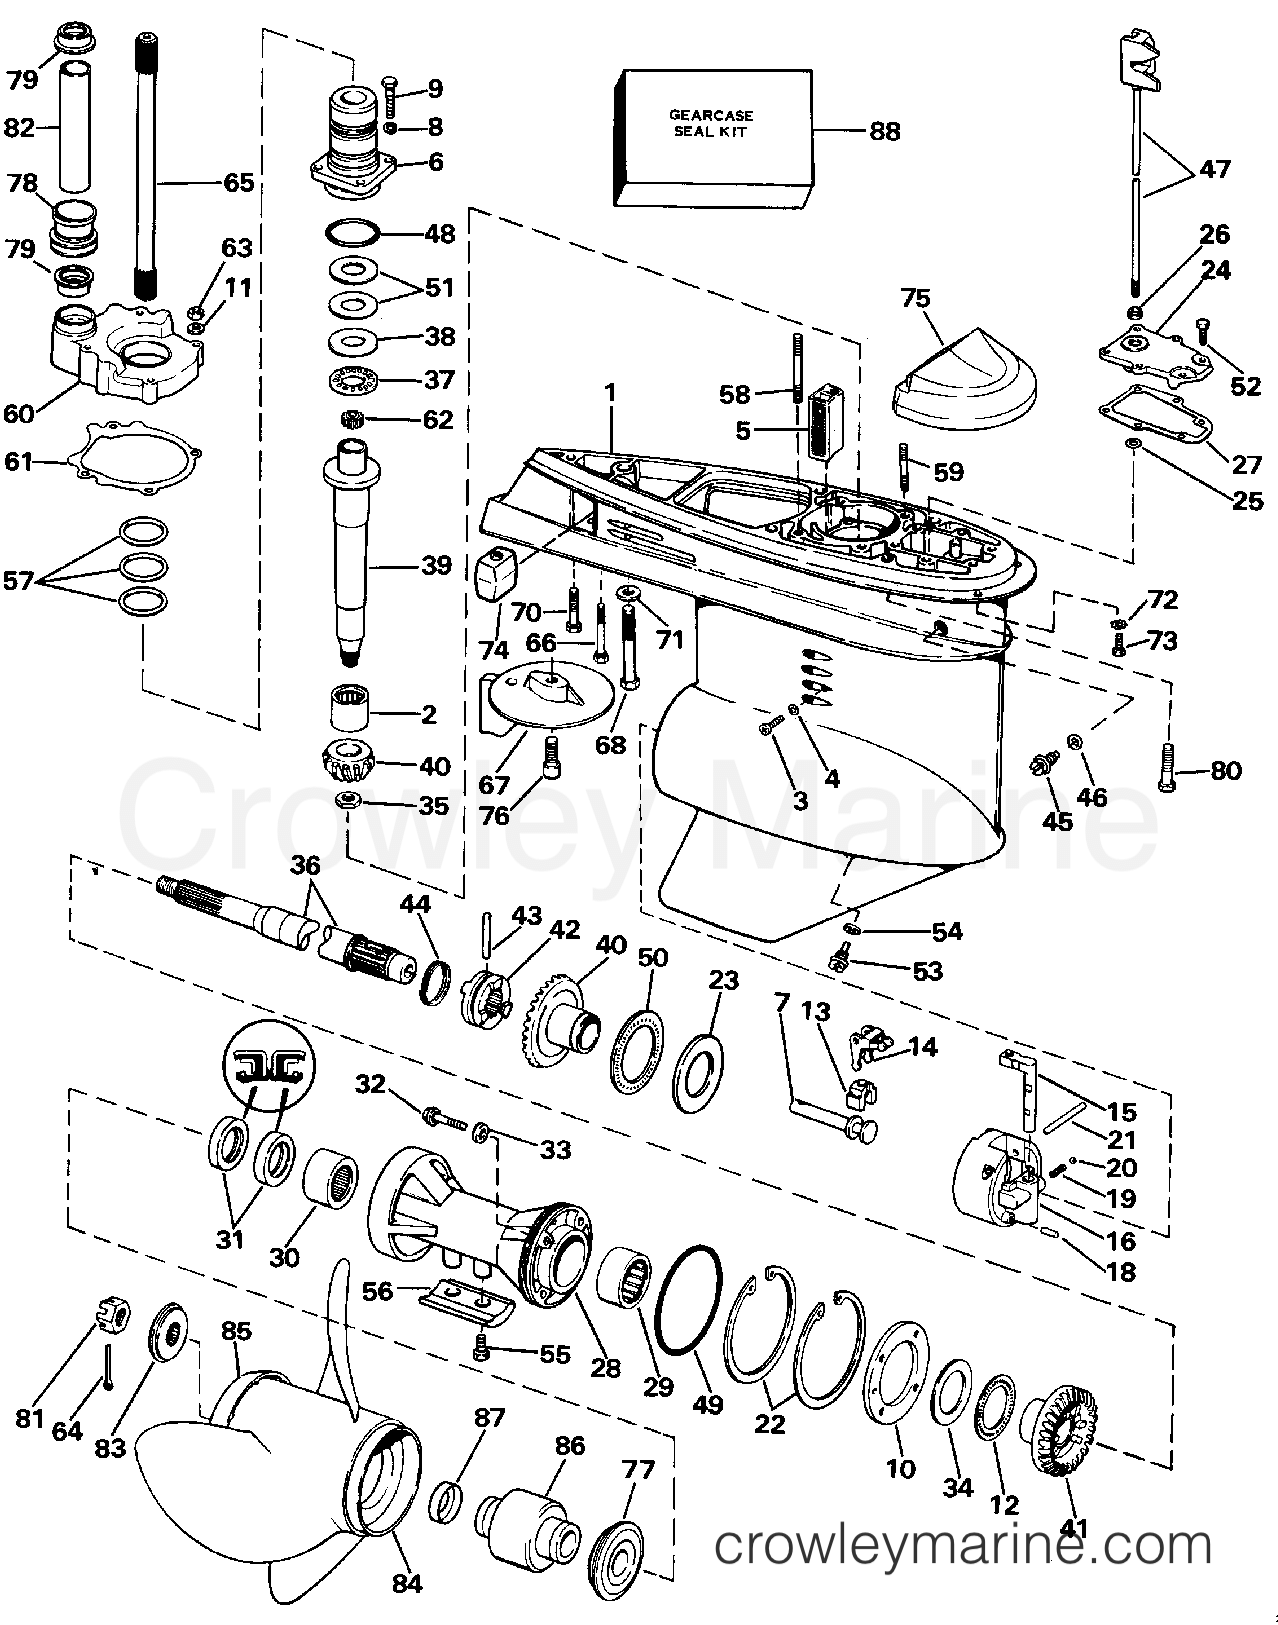 1988 Omc Cora Wiring Diagram Diagrams Cobra 3 0 Lower Gearcase Stern Drive 2 232amrgde 30 Shop Manual